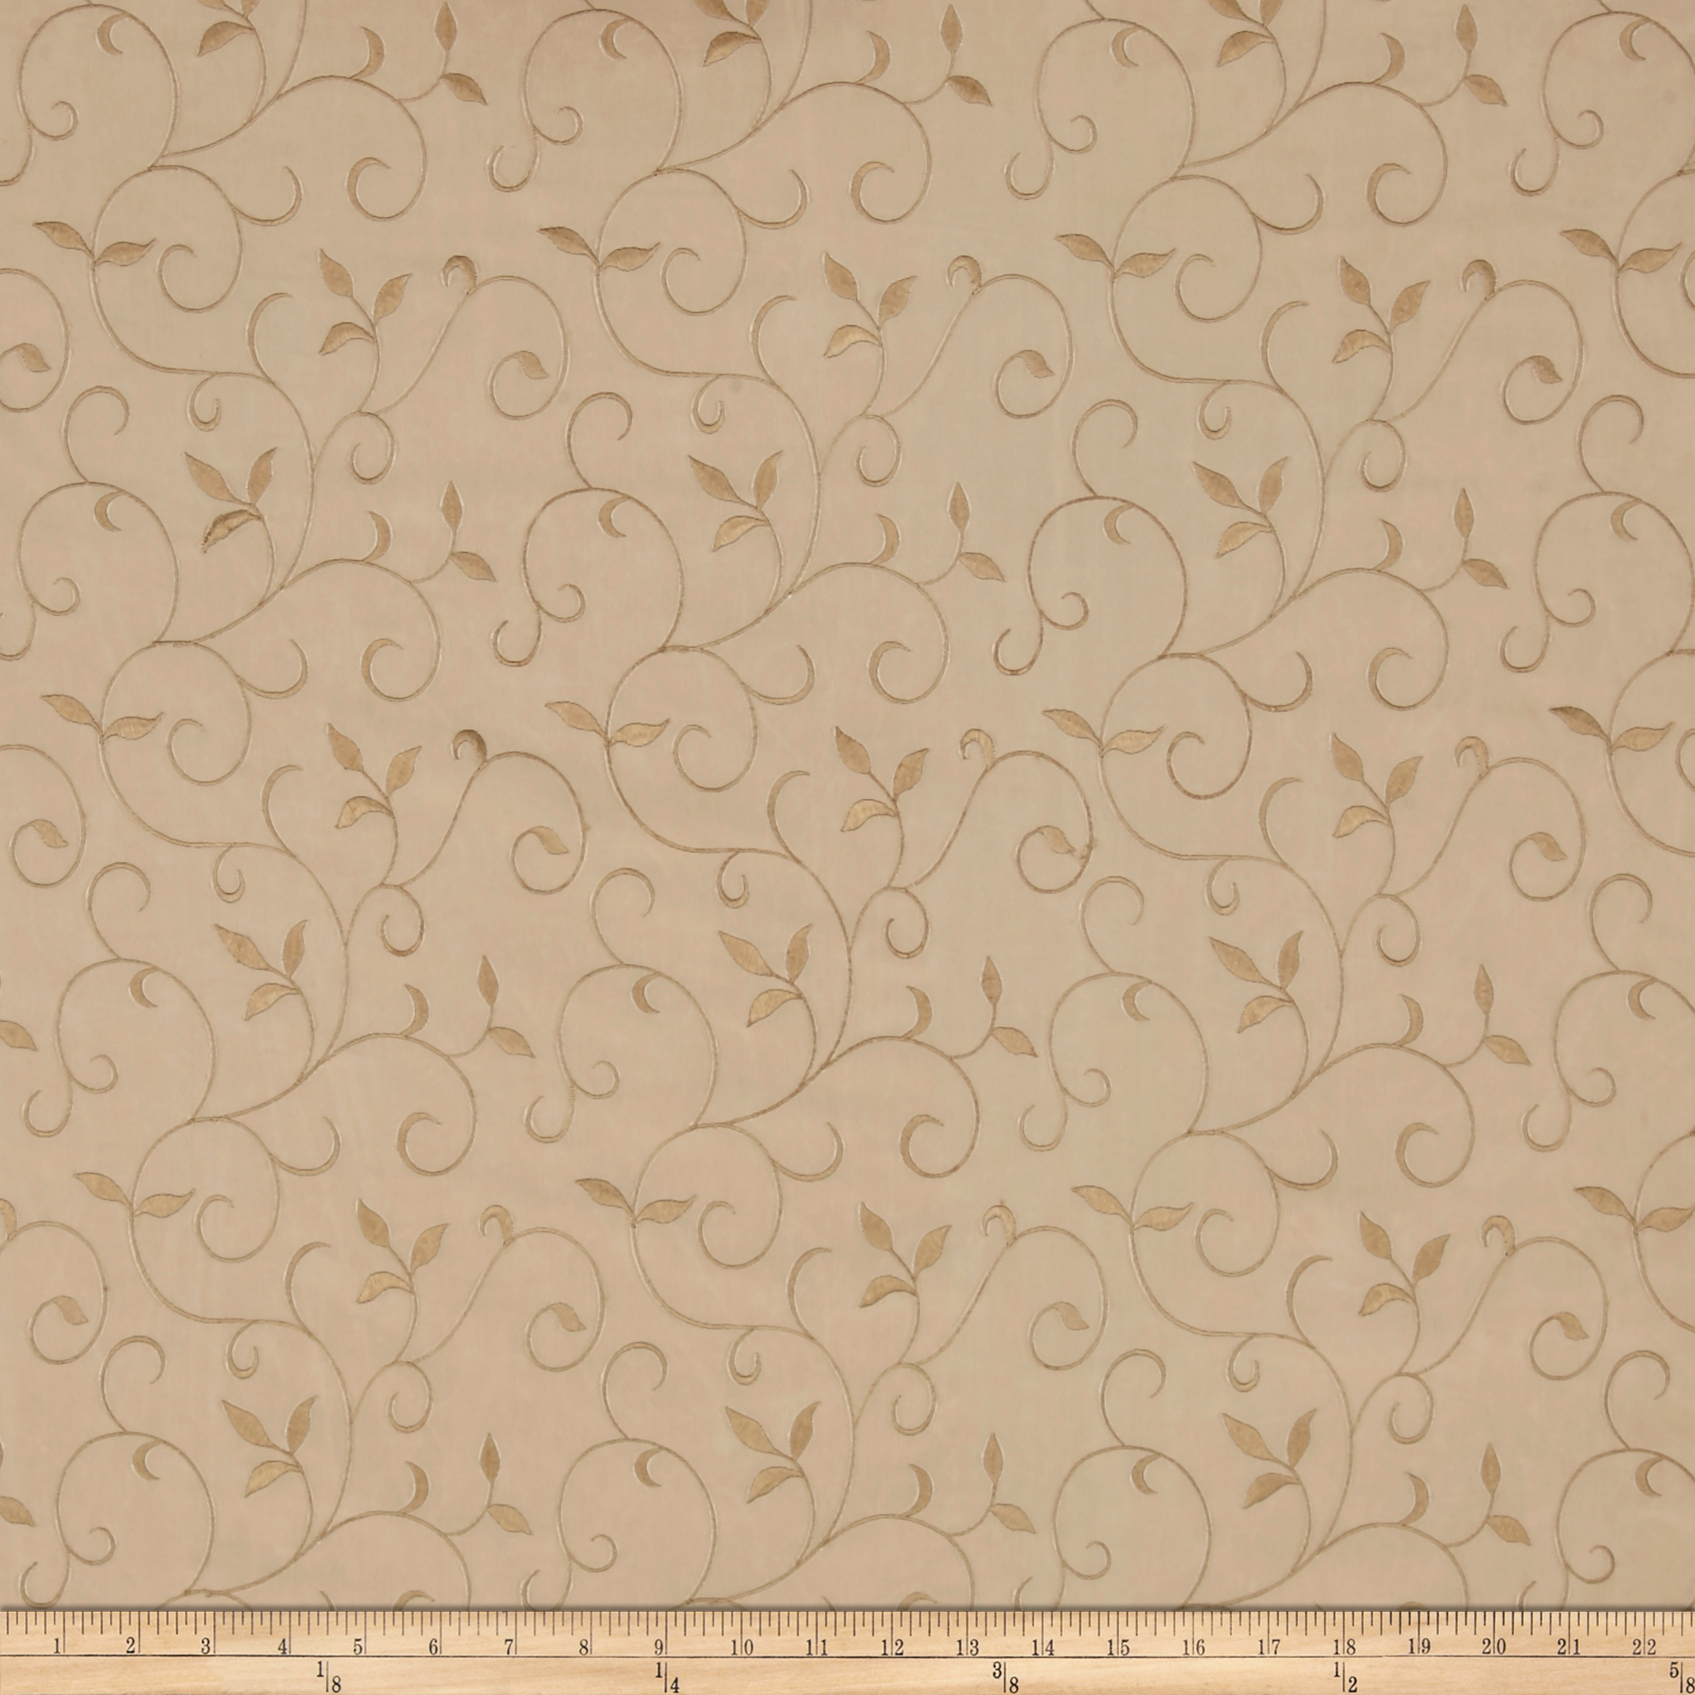 Richloom Archie Embroidered Tafetta Toast Fabric by TNT in USA